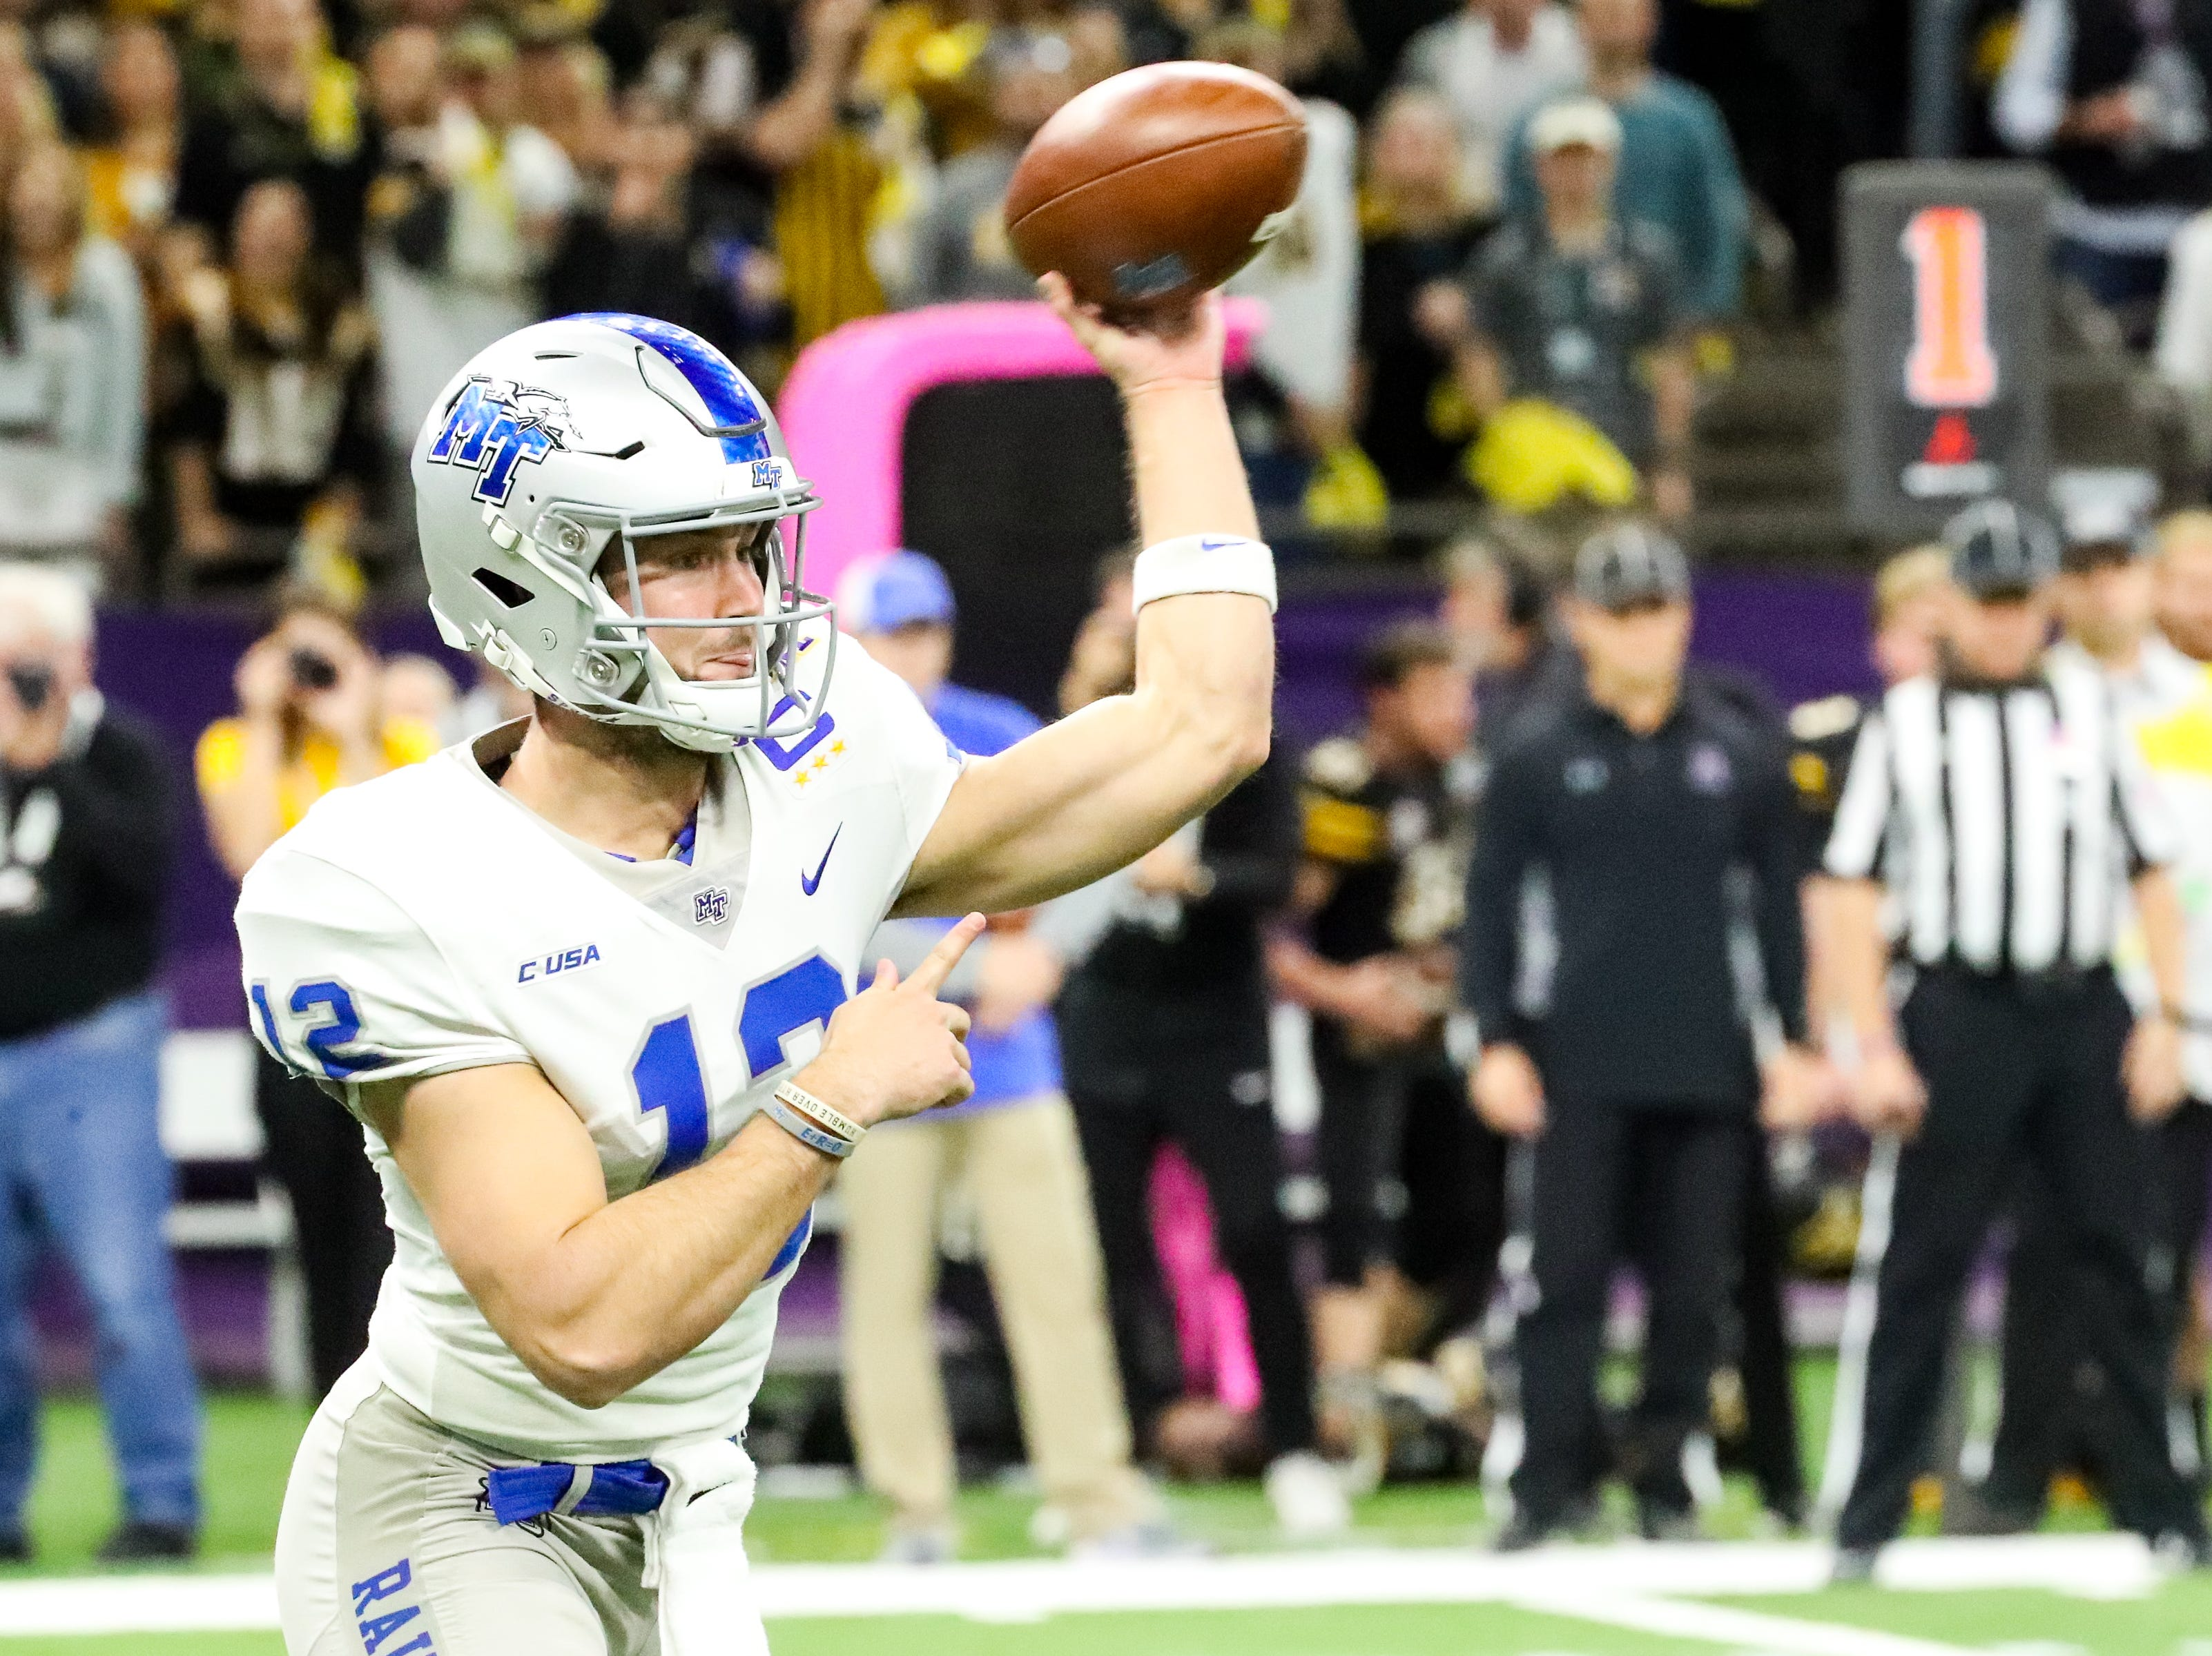 Middle Tennessee Blue Raiders quarterback Brent Stockstill (12) throws the ball during the first half at the Mercedes-Benz Superdome Saturday, Dec. 15, 2018, in New Orleans, La.